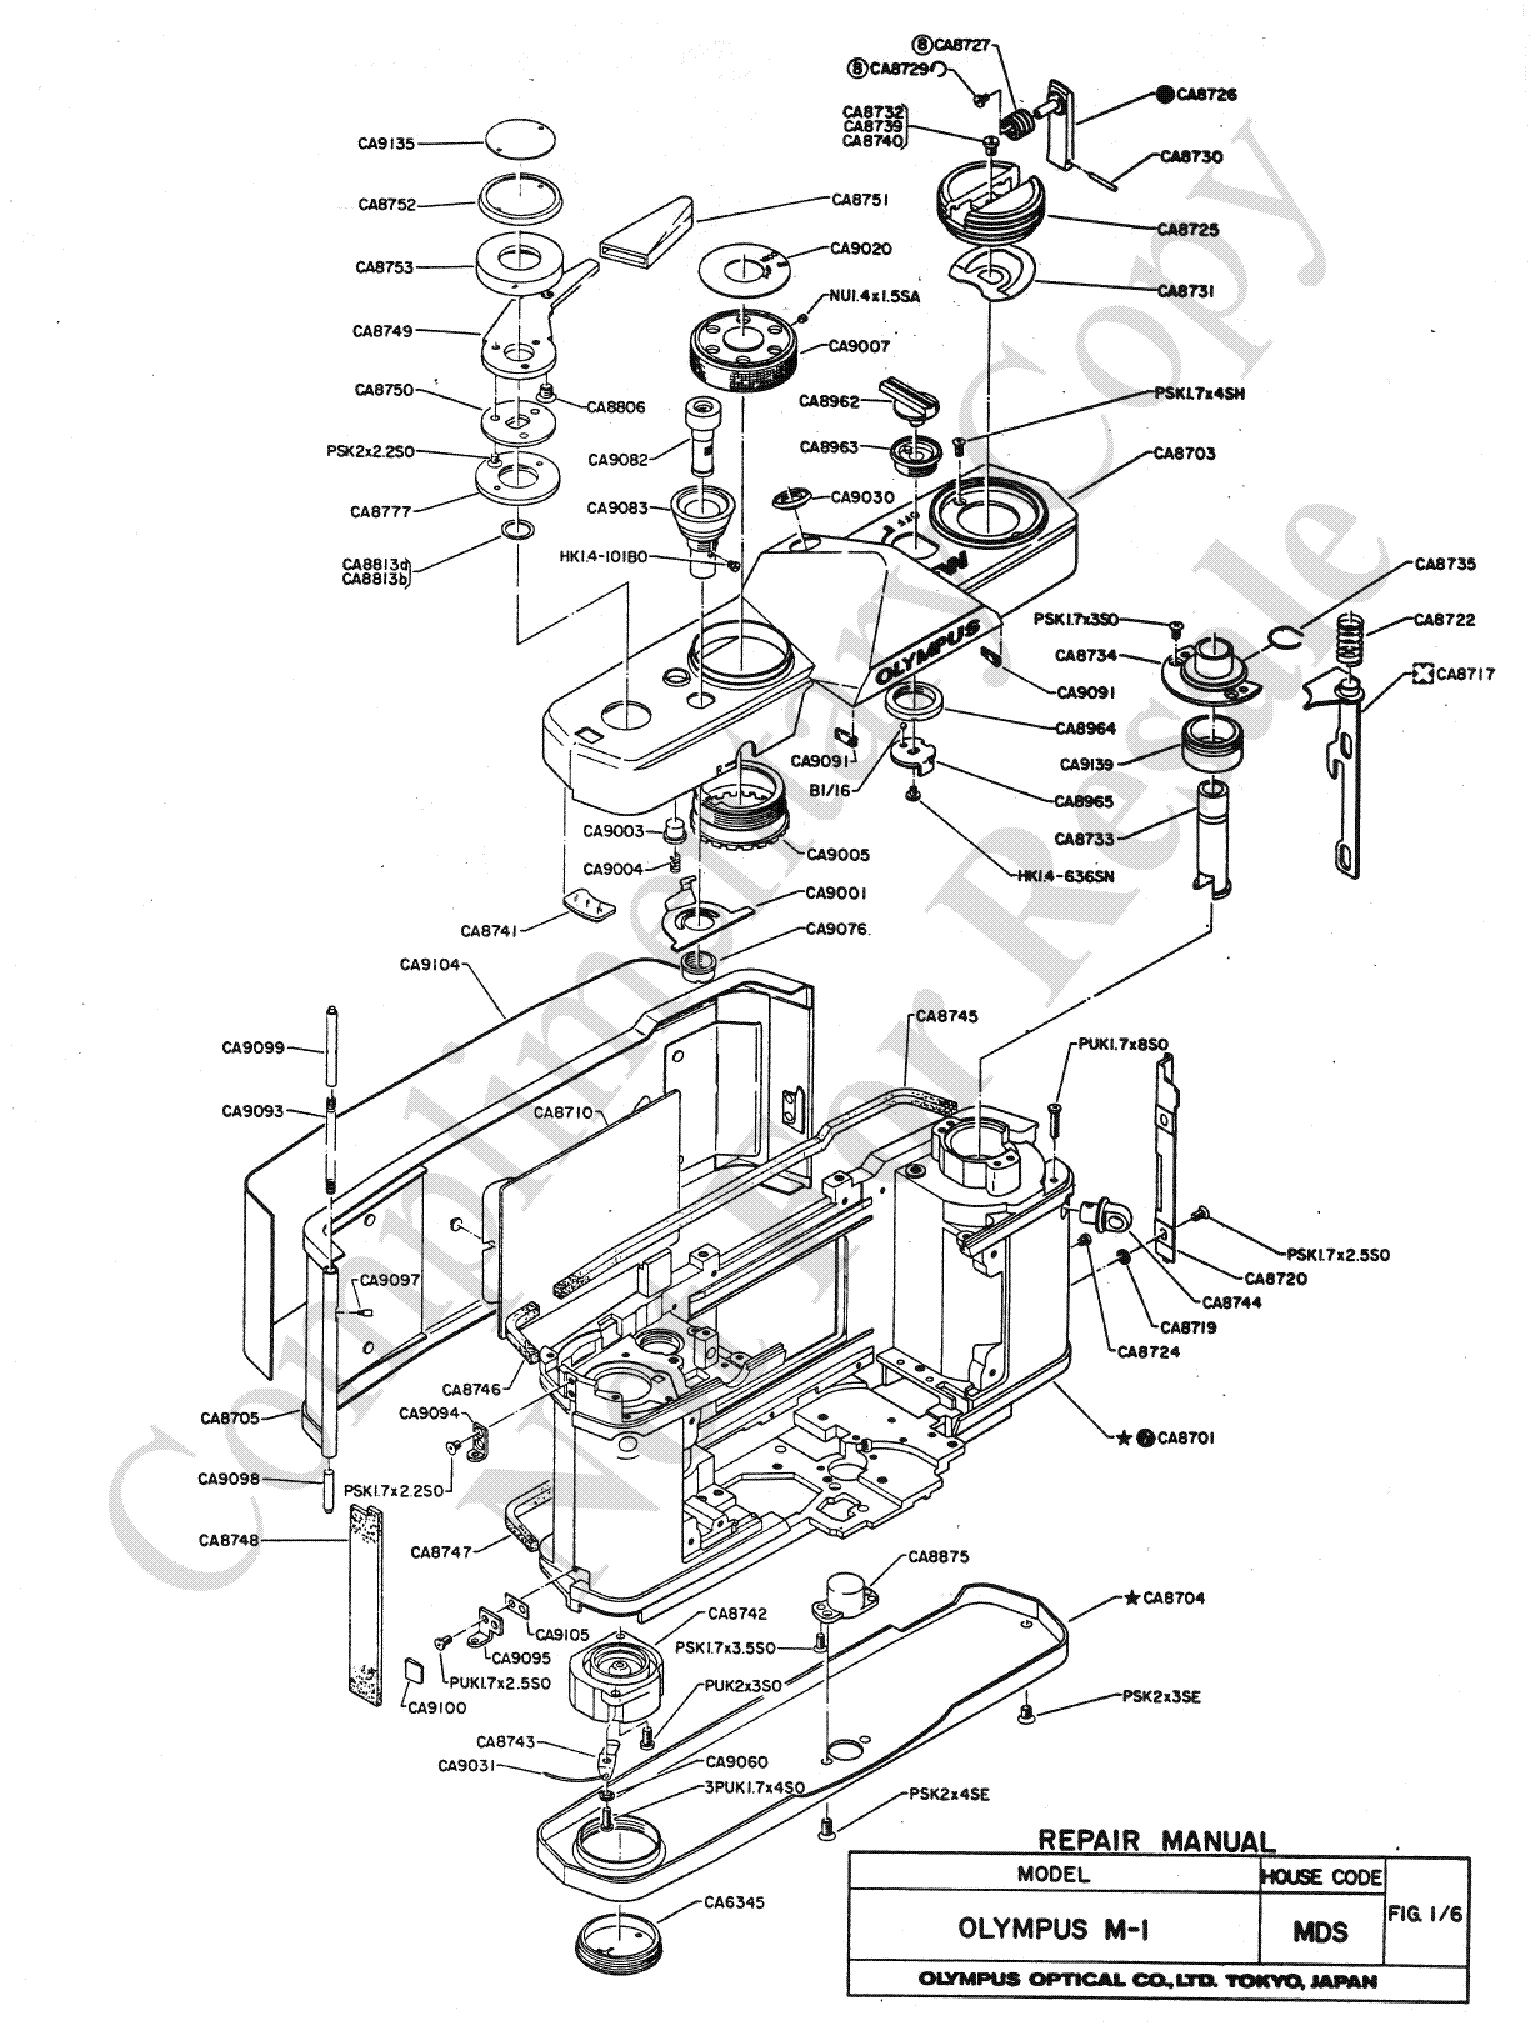 olympus om 1 exploded parts diagram service manual free download  : exploded parts diagram - findchart.co